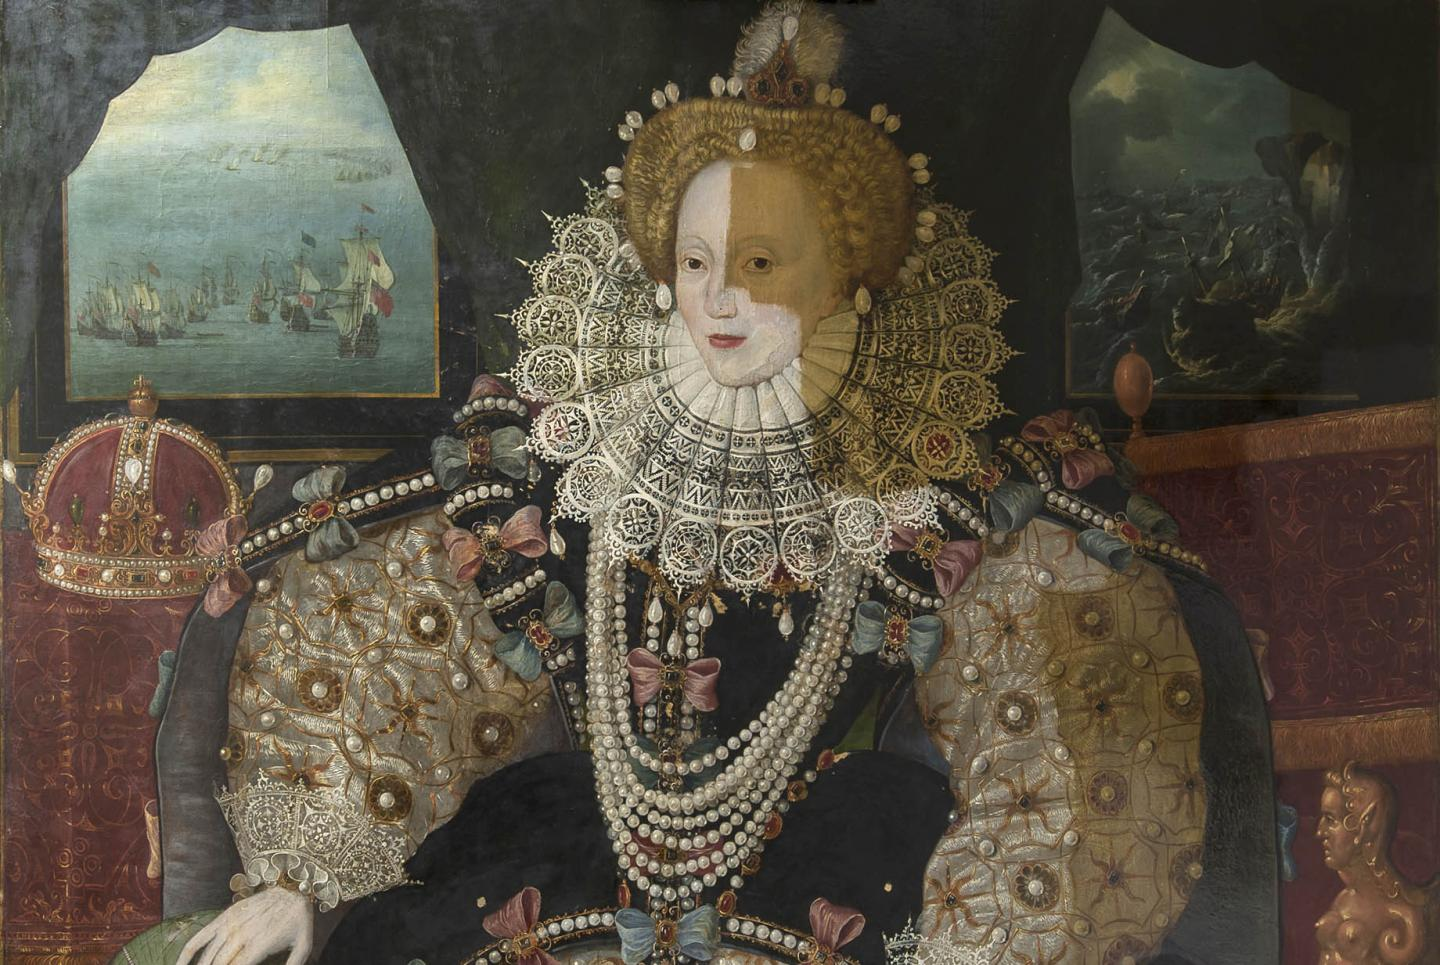 The Armada Portrait of Queen Elizabeth I: removing the varnish